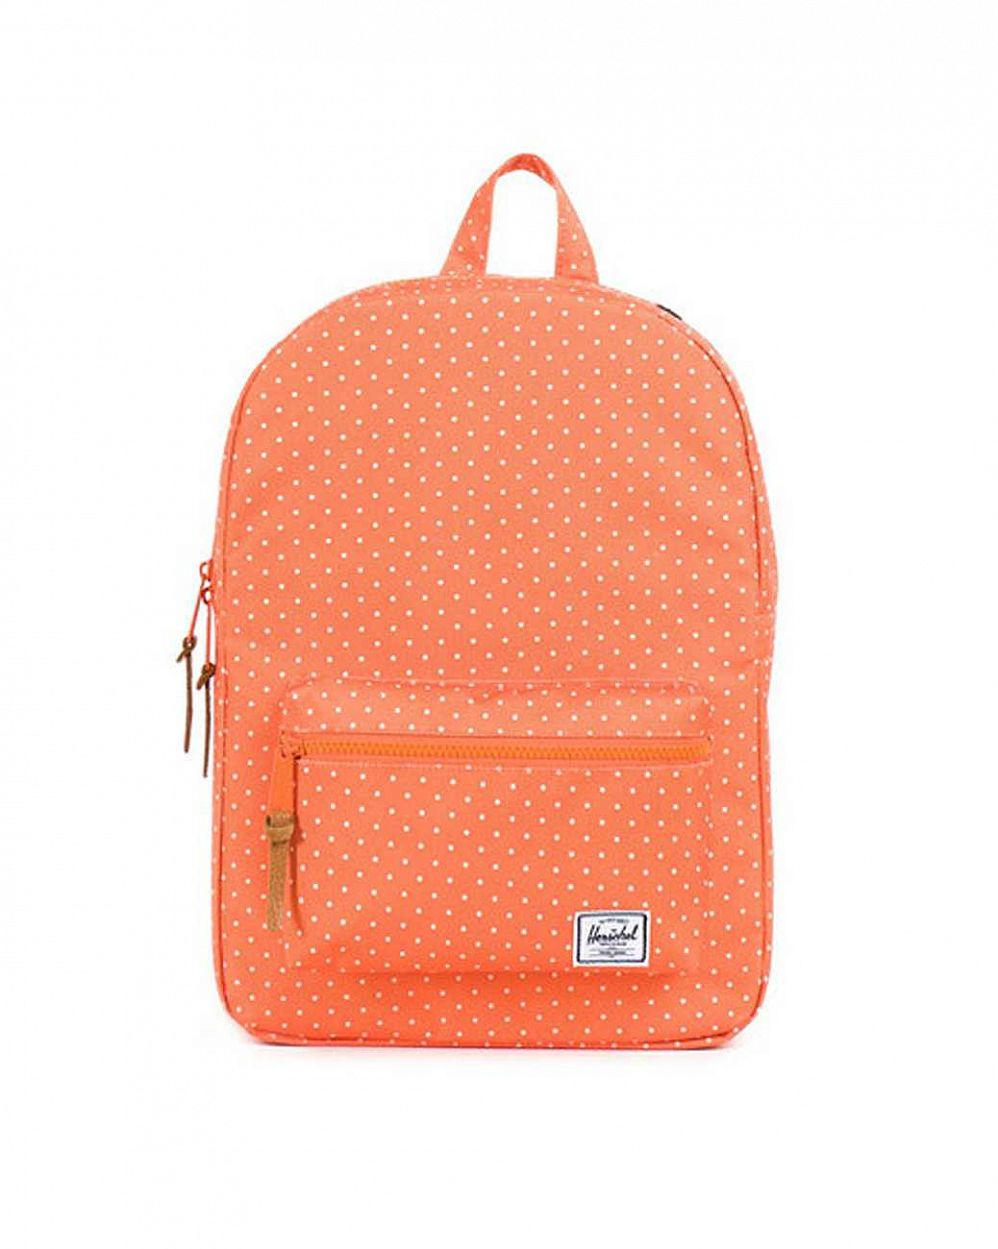 купить Рюкзак Herschel Settlements Youth Orange Polka Dot в Москве